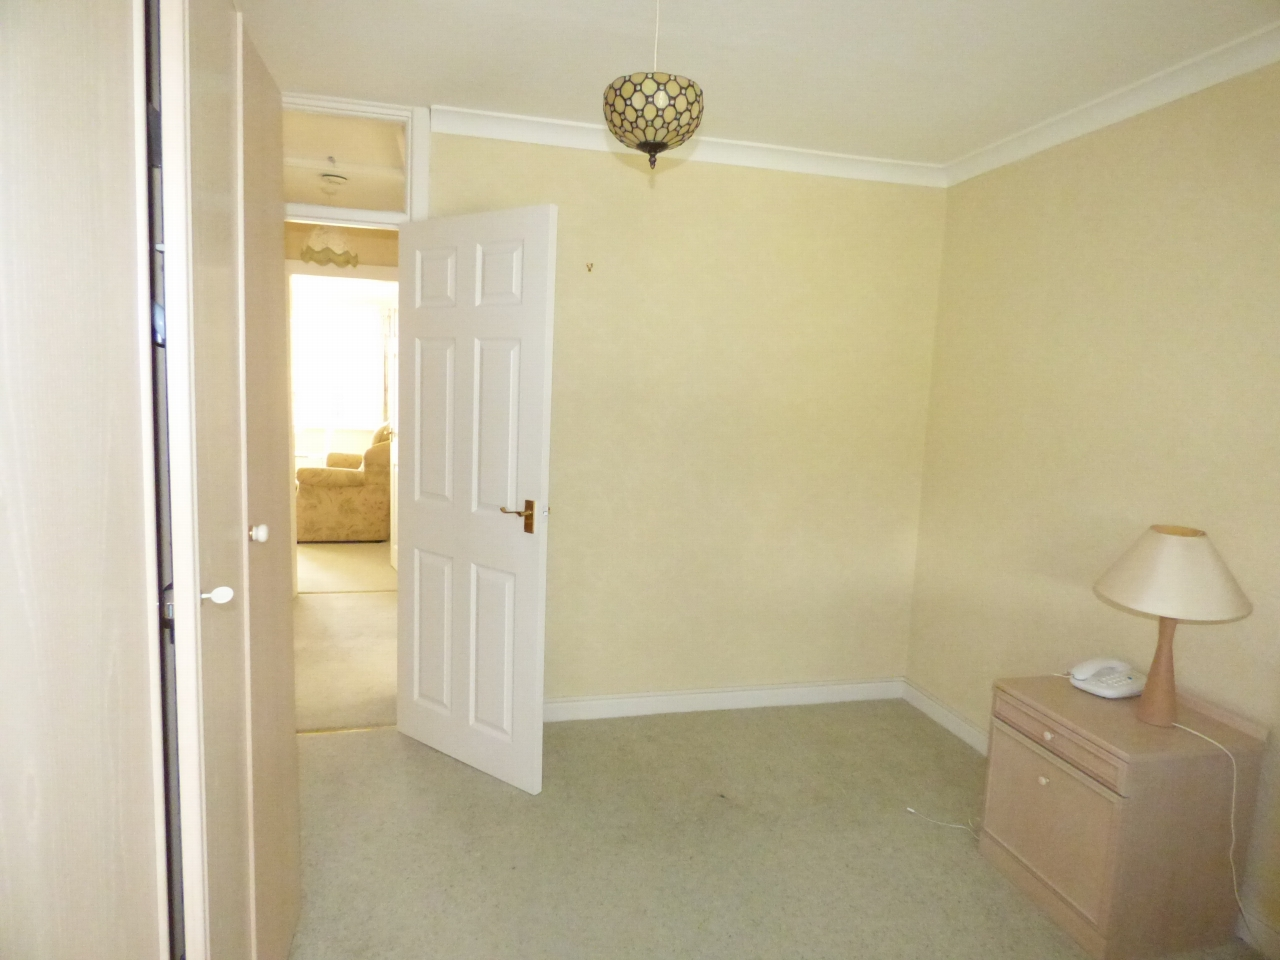 2 Bedroom Detached Bungalow Bungalow For Sale - Image 6